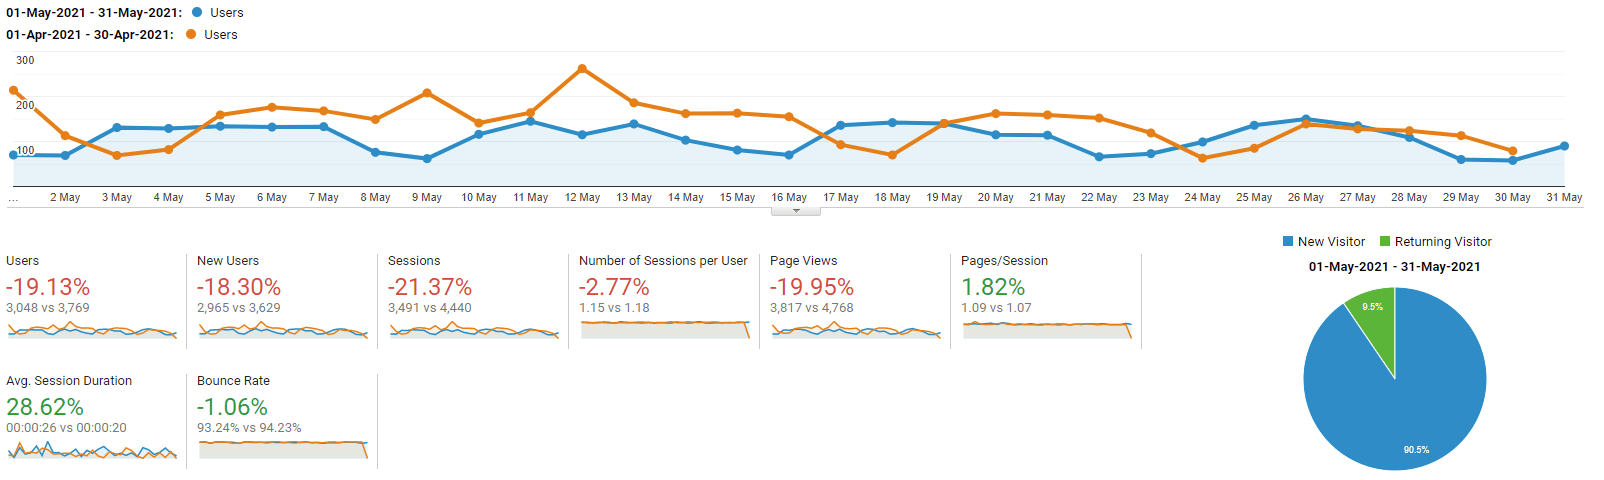 Google Analytics graph of kevinpeters.net for May 2021